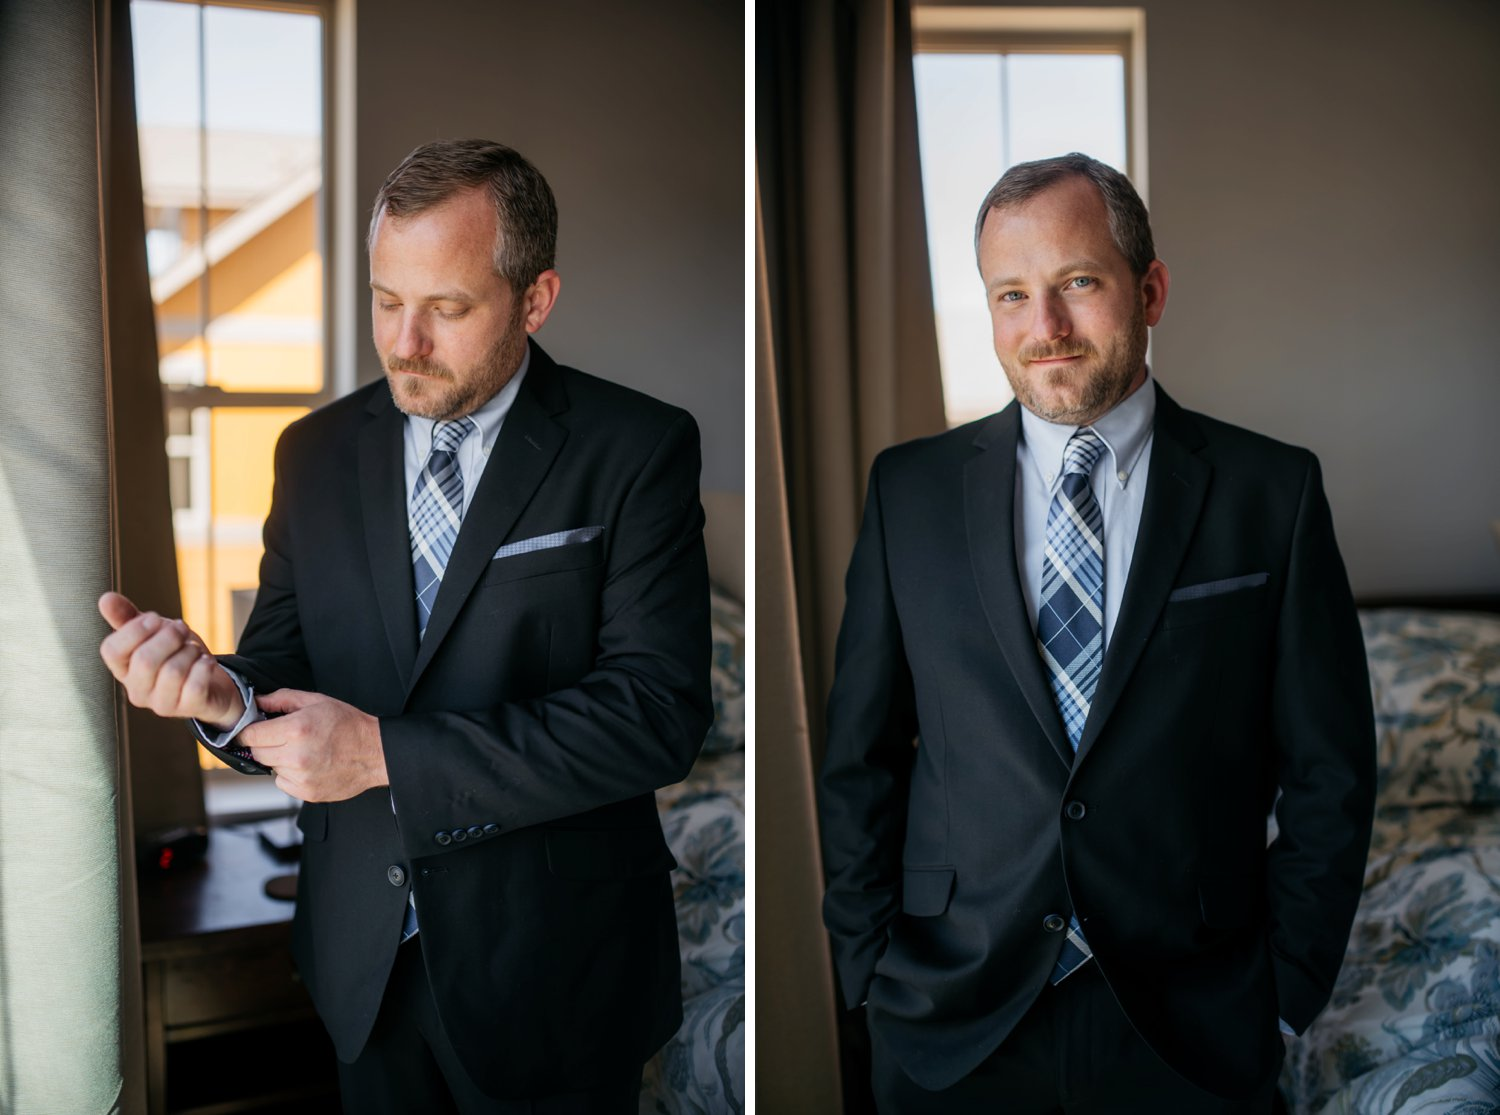 Groom getting ready and adjusting his cufflink photo! Photo by Maddie Mae Photography